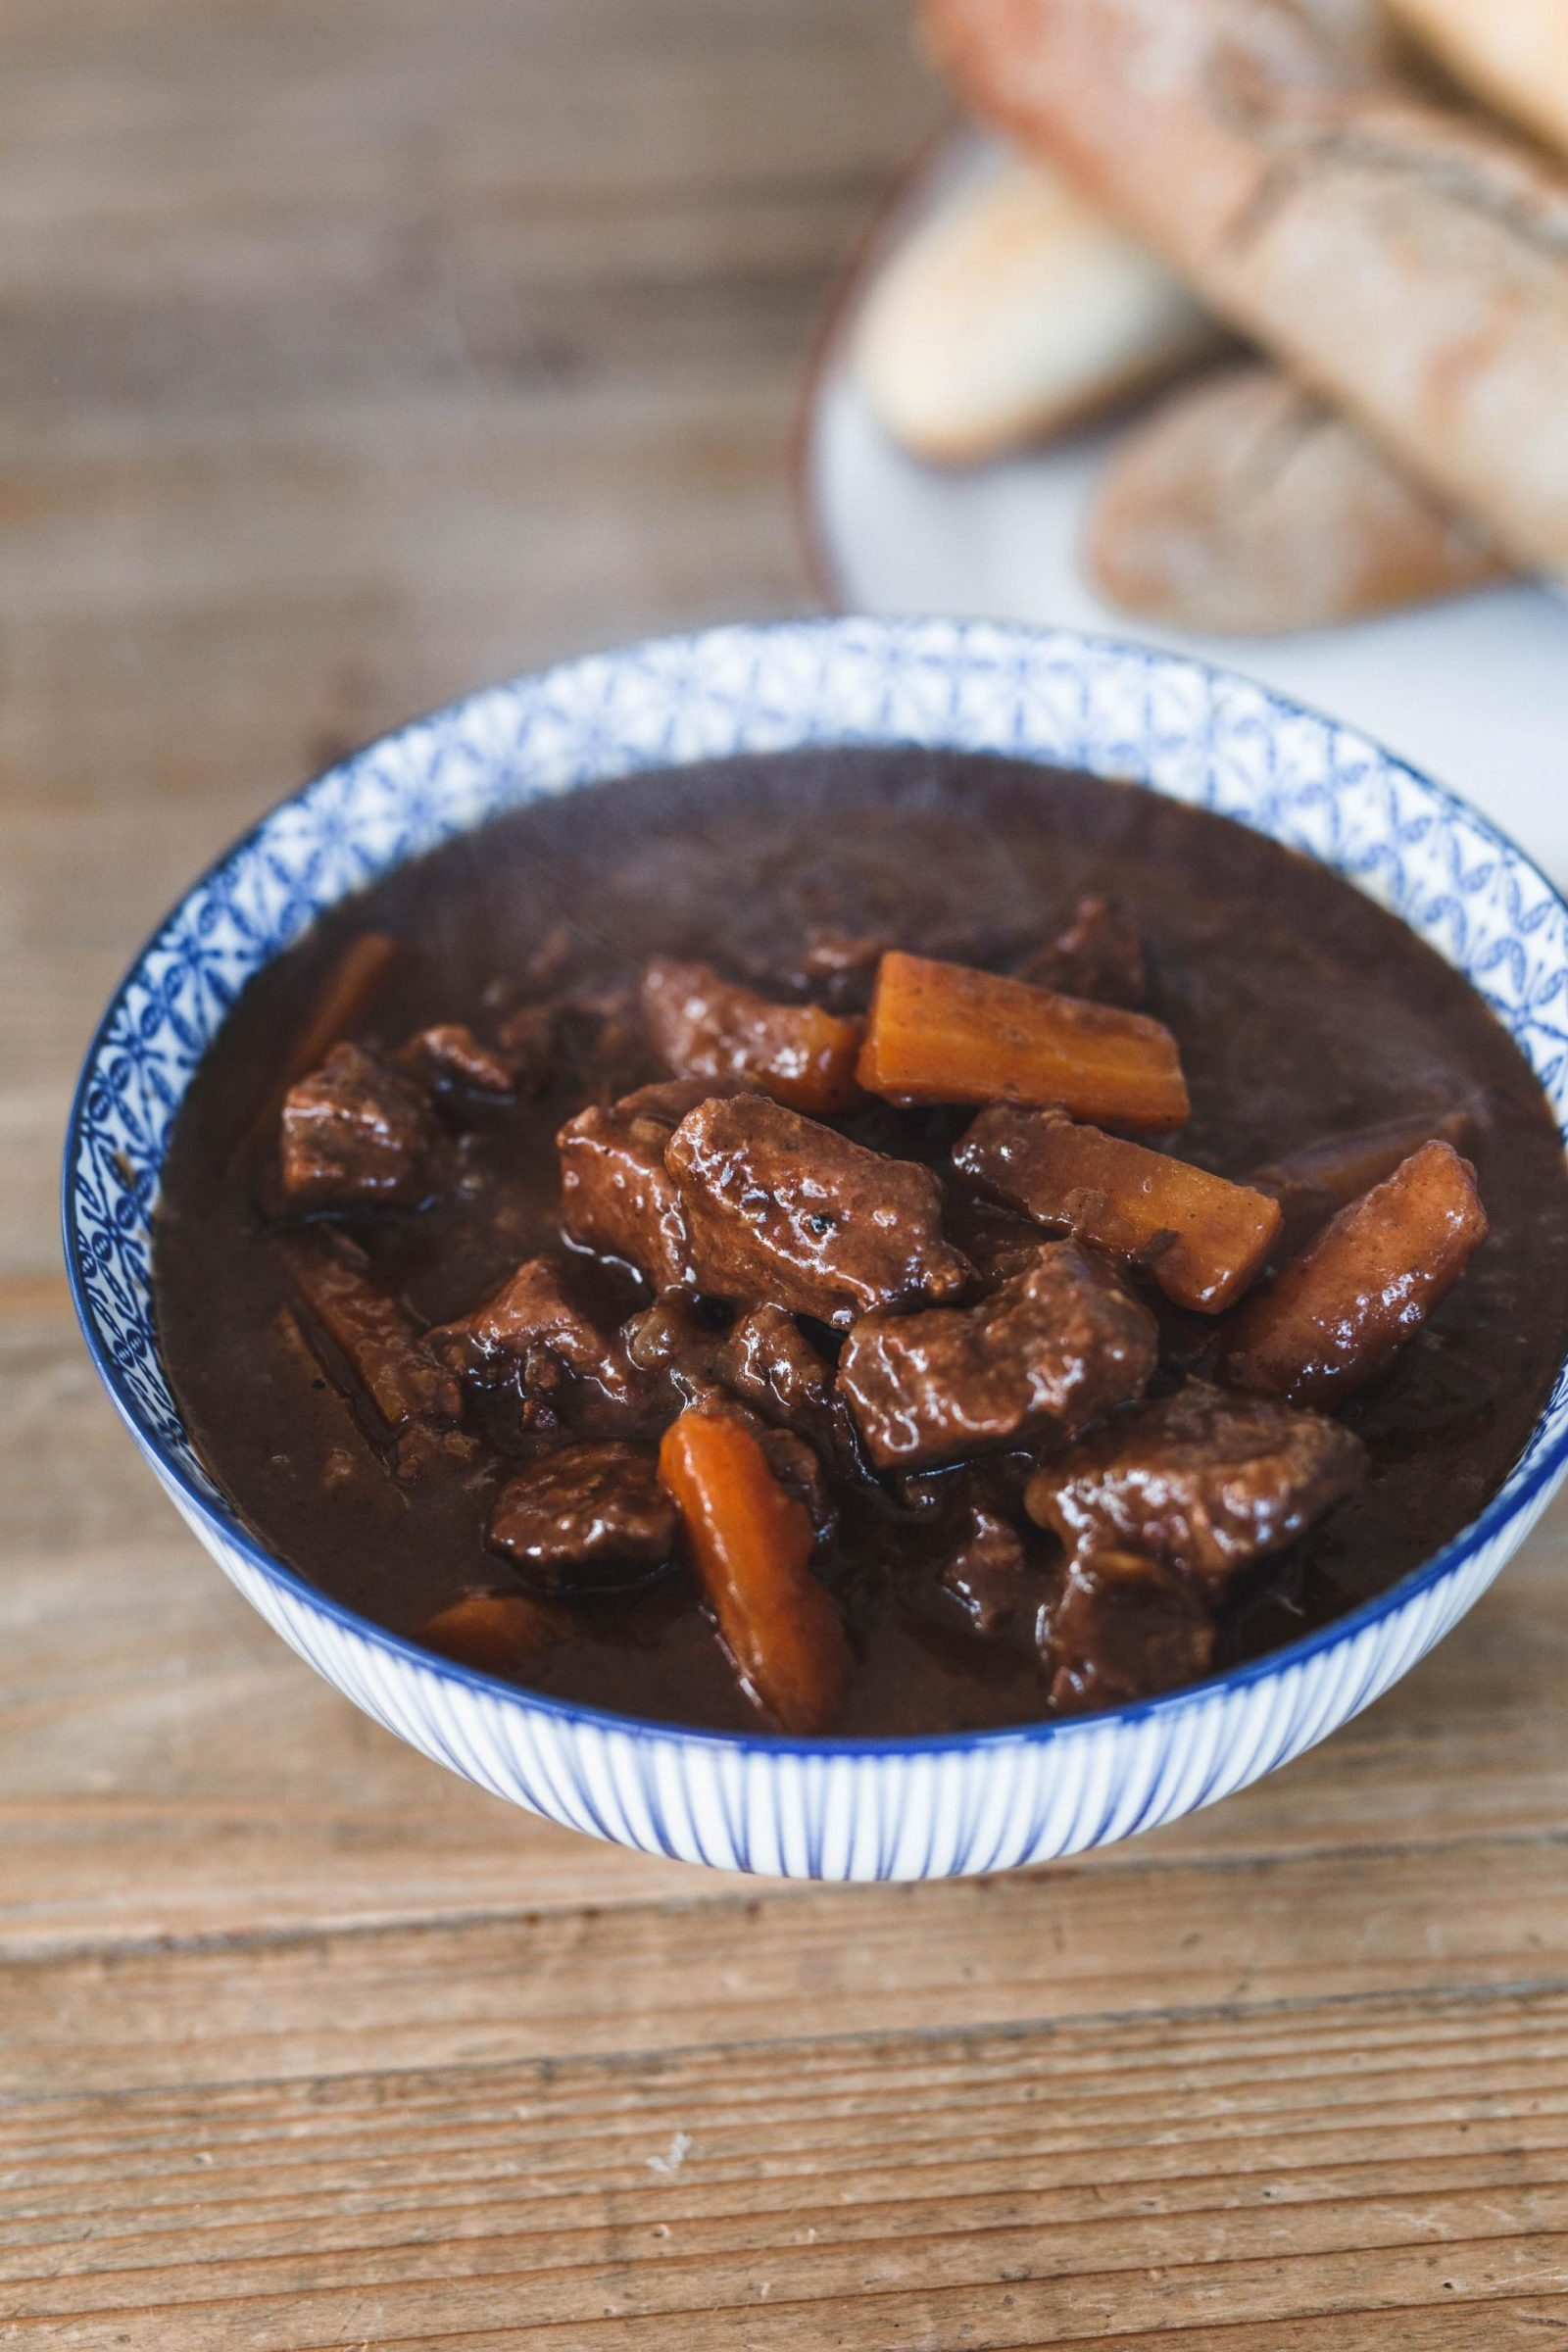 beef stew leanmeanmomma slow cooker